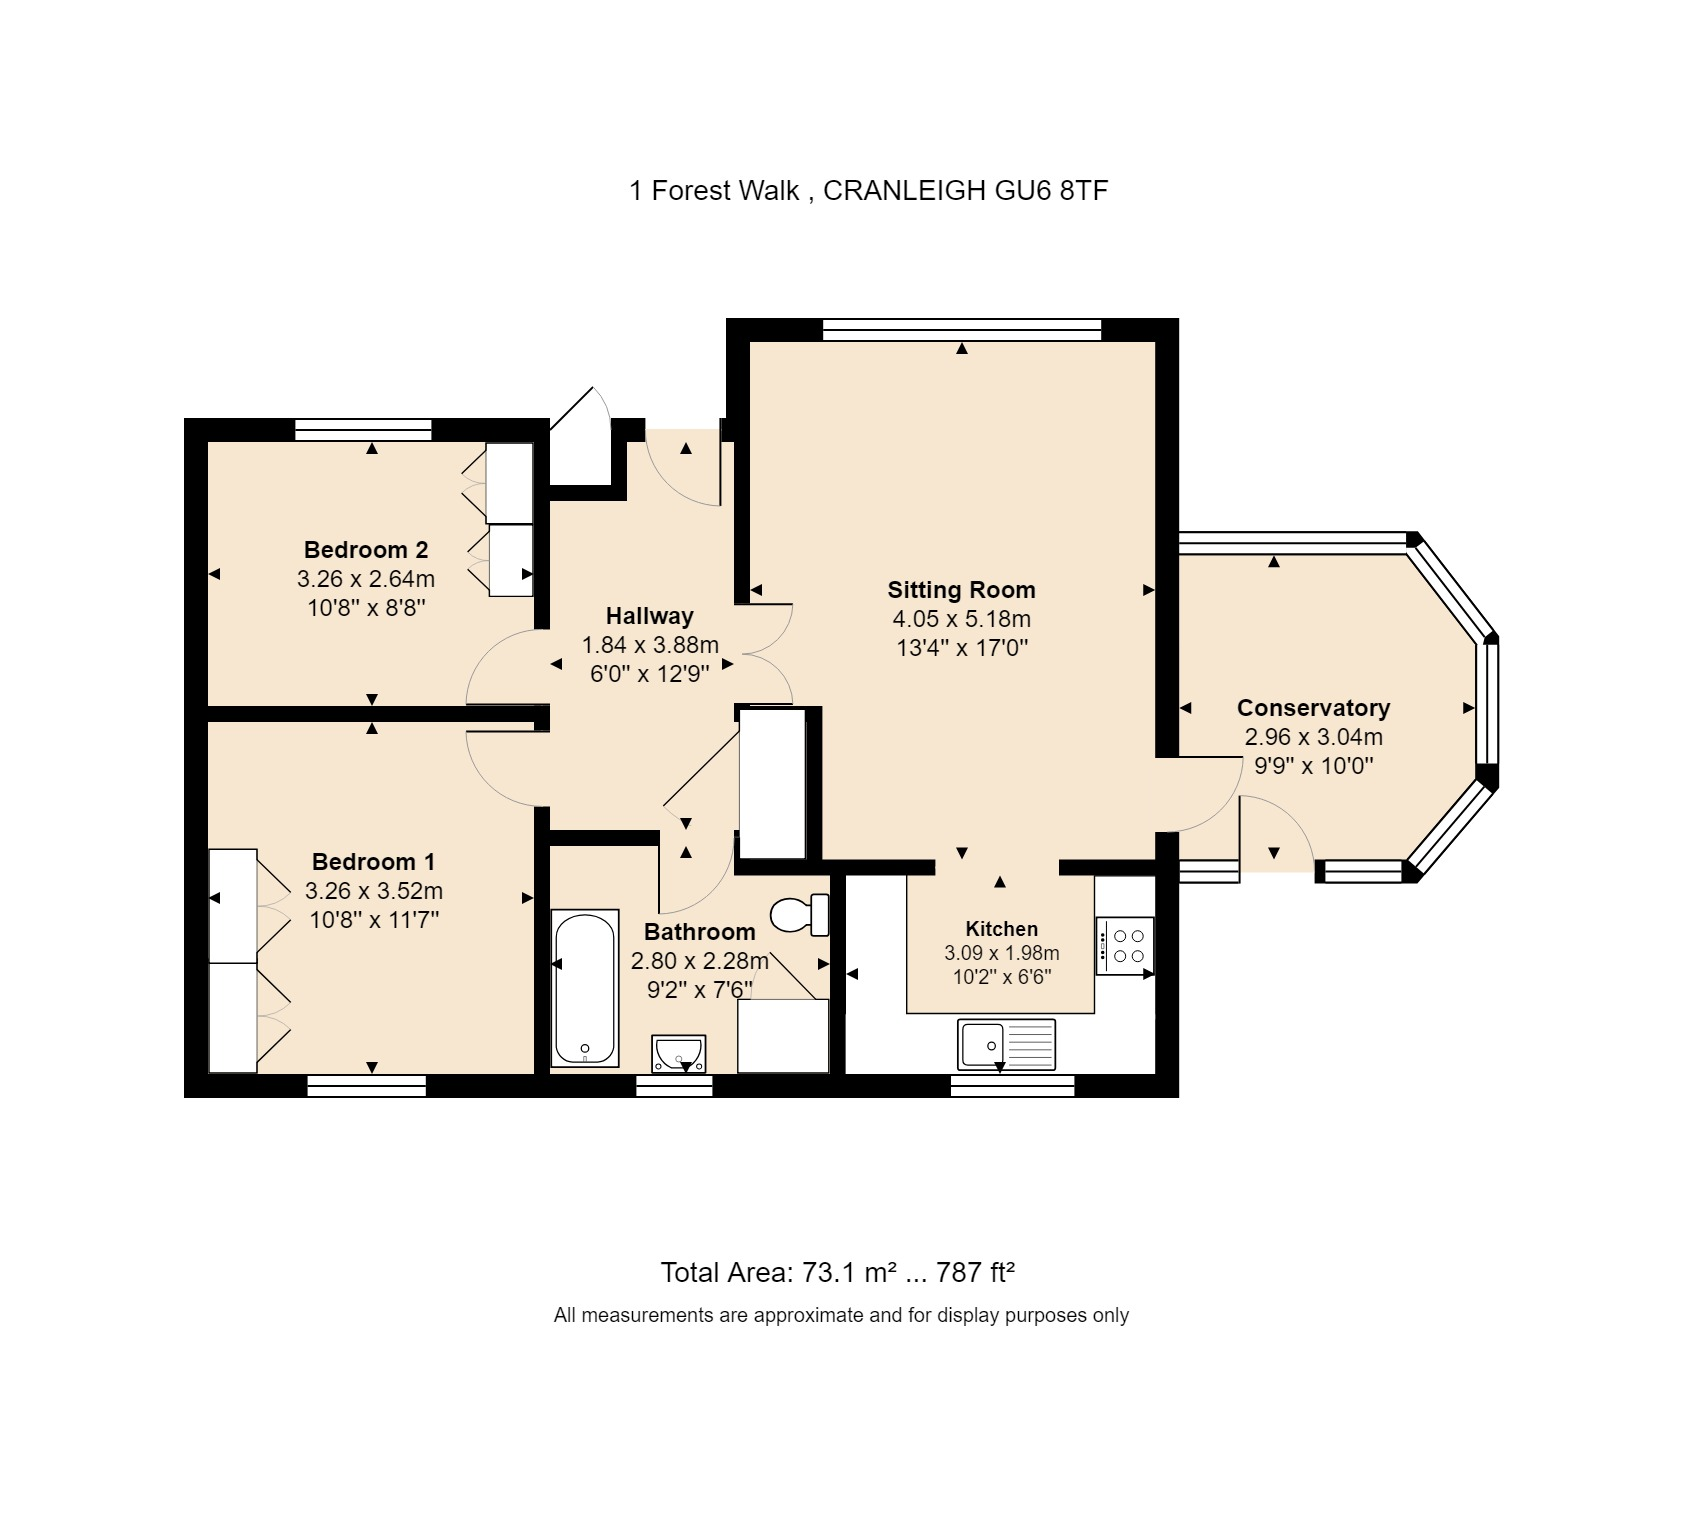 1 Forest Walk Floorplan